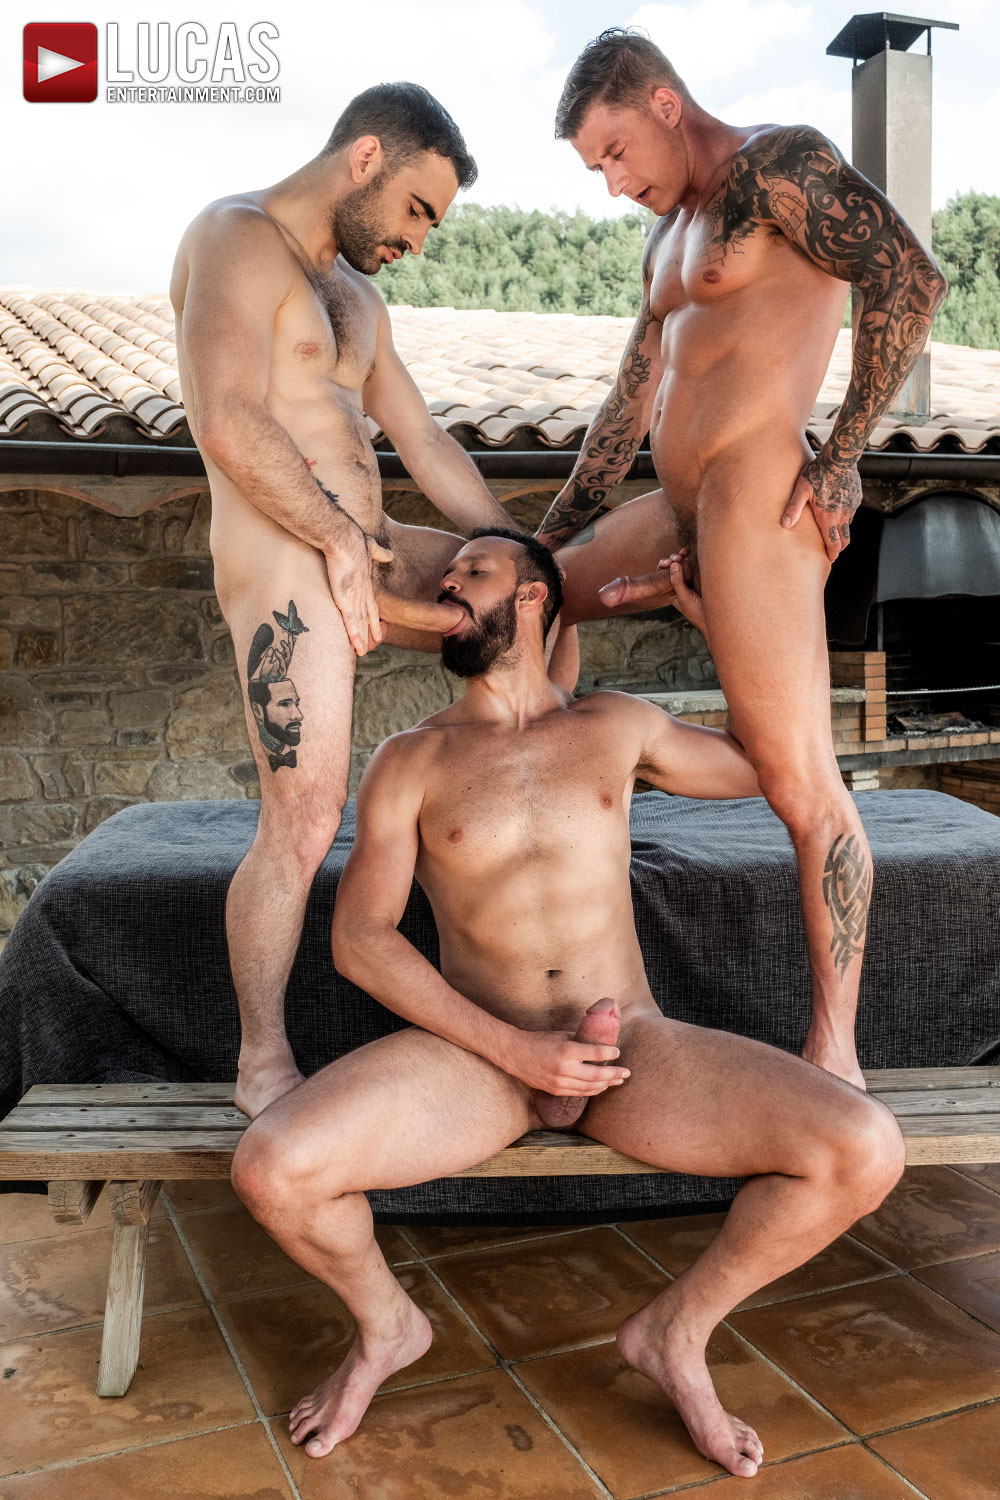 Max Arion, Geordie Jackson, Andy Onassis | Outdoors Threesome - Gay Movies - Lucas Entertainment